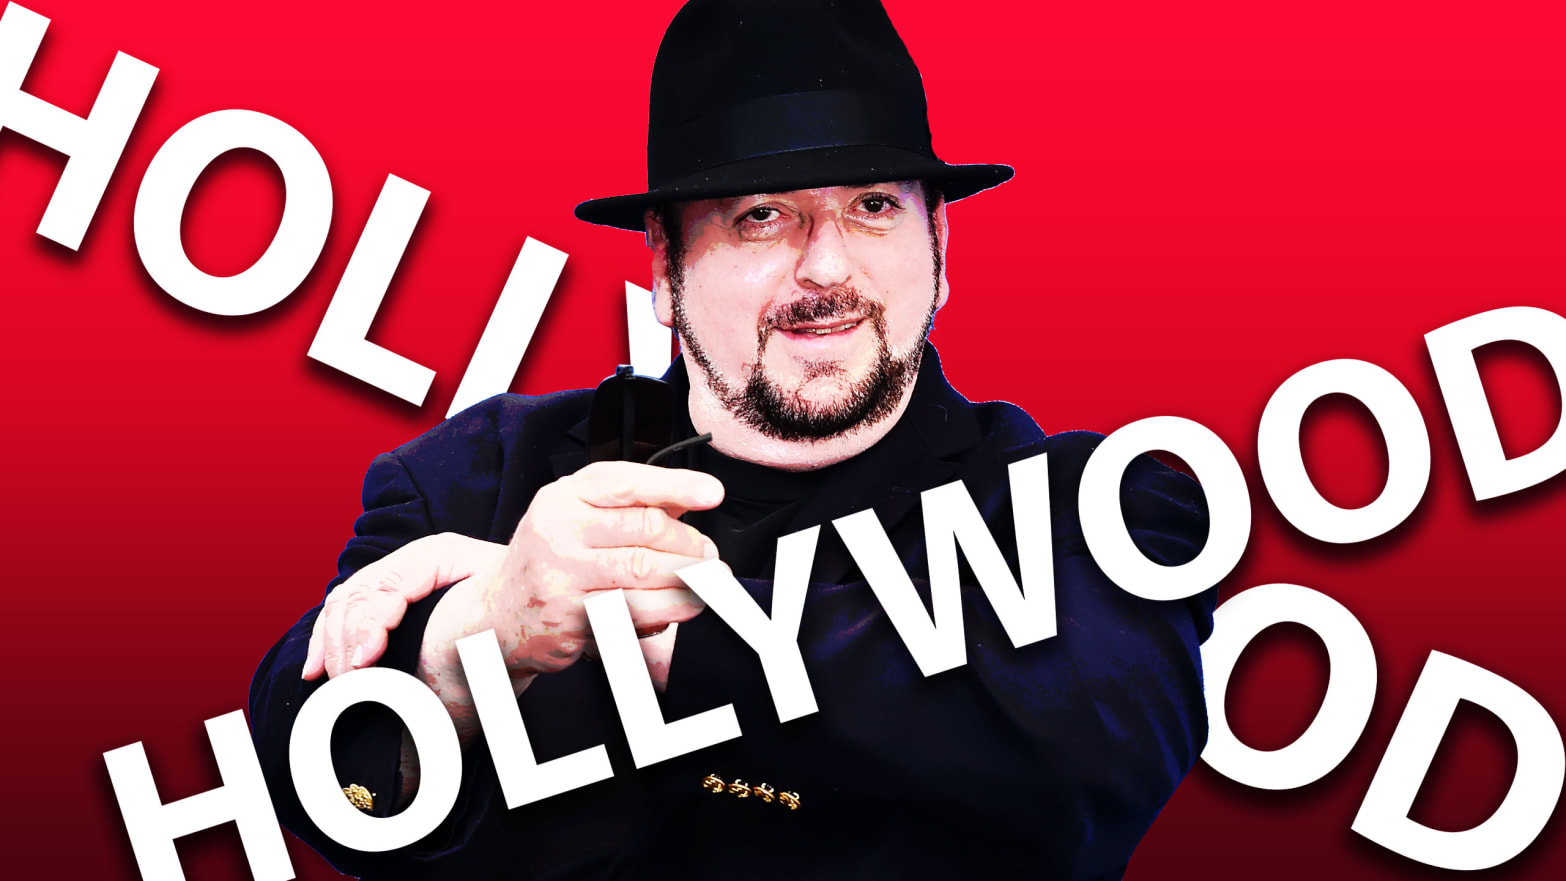 Tons of Women Are Accusing James Toback of Harassment on Social Media